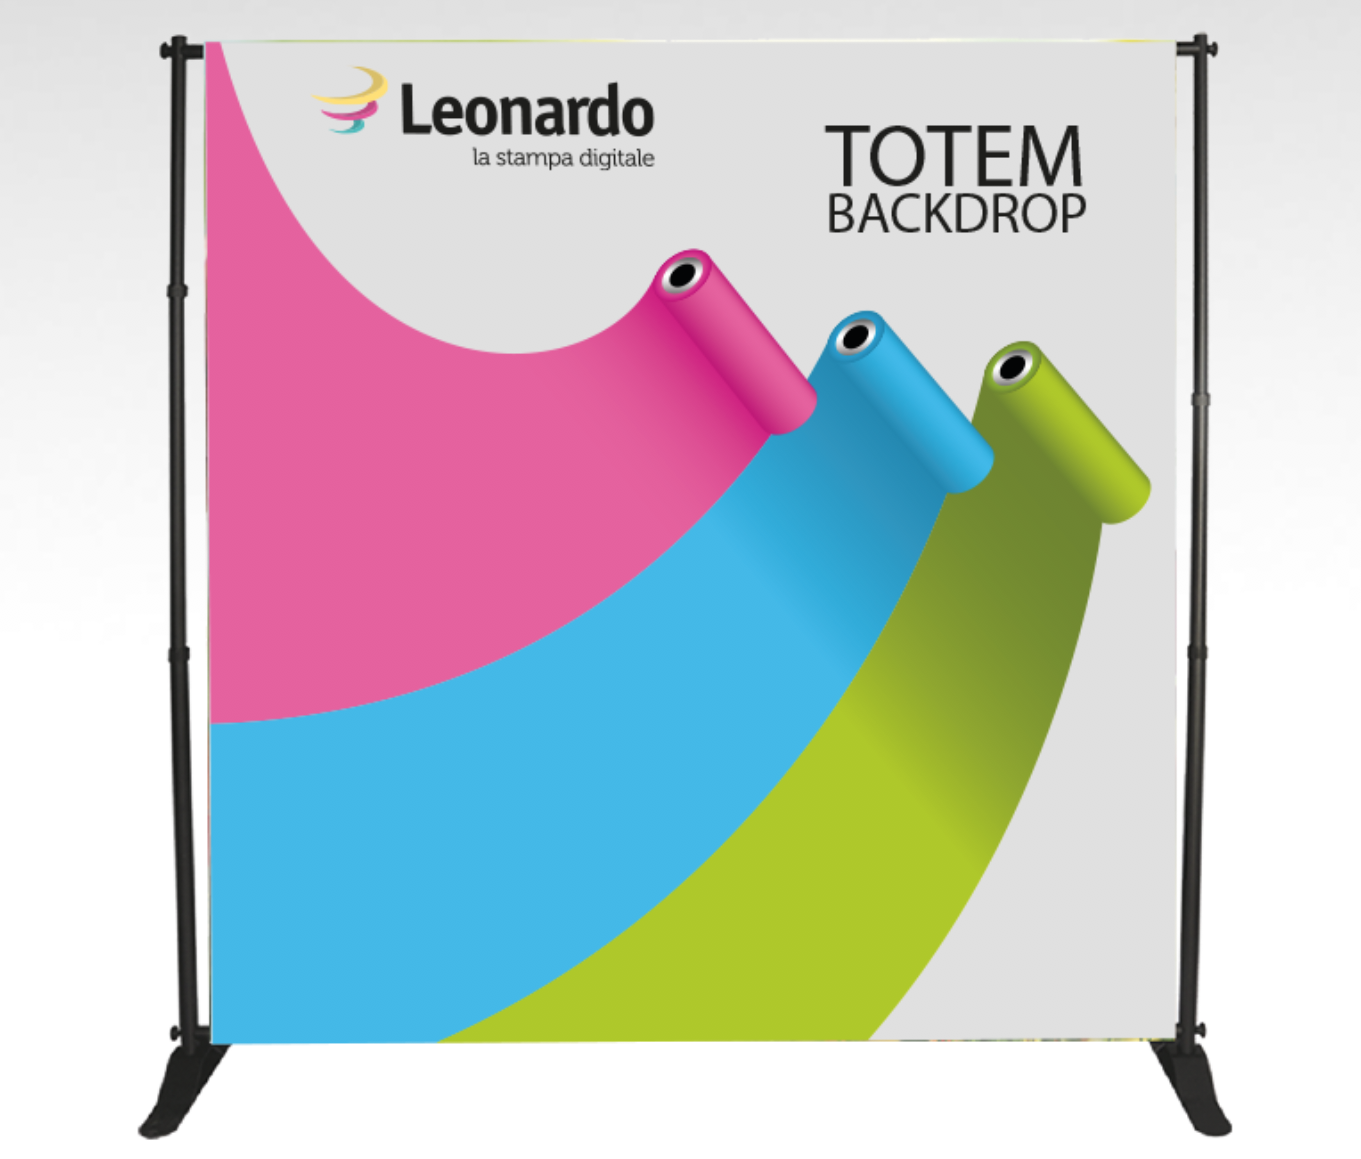 TOTEM BACKDROP